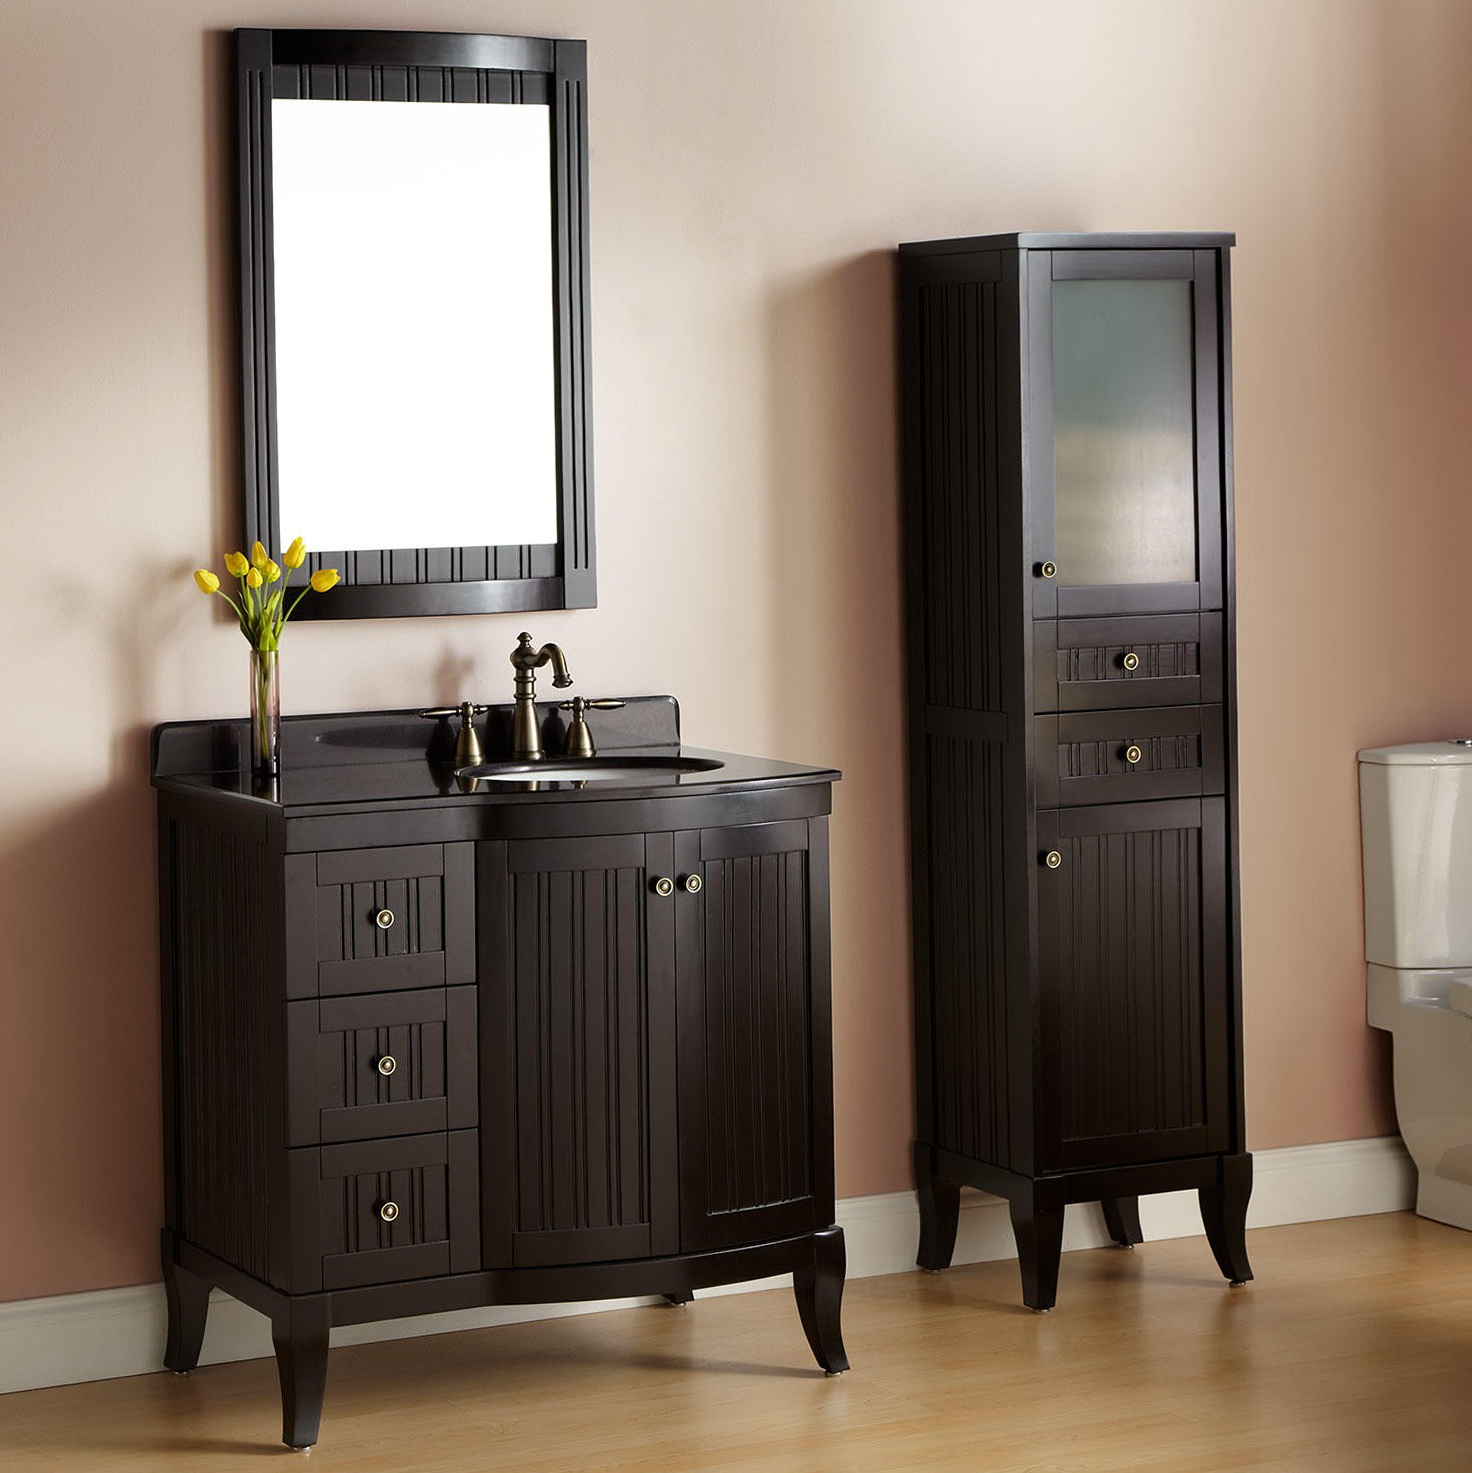 Bathroom Ideas With Espresso Vanity